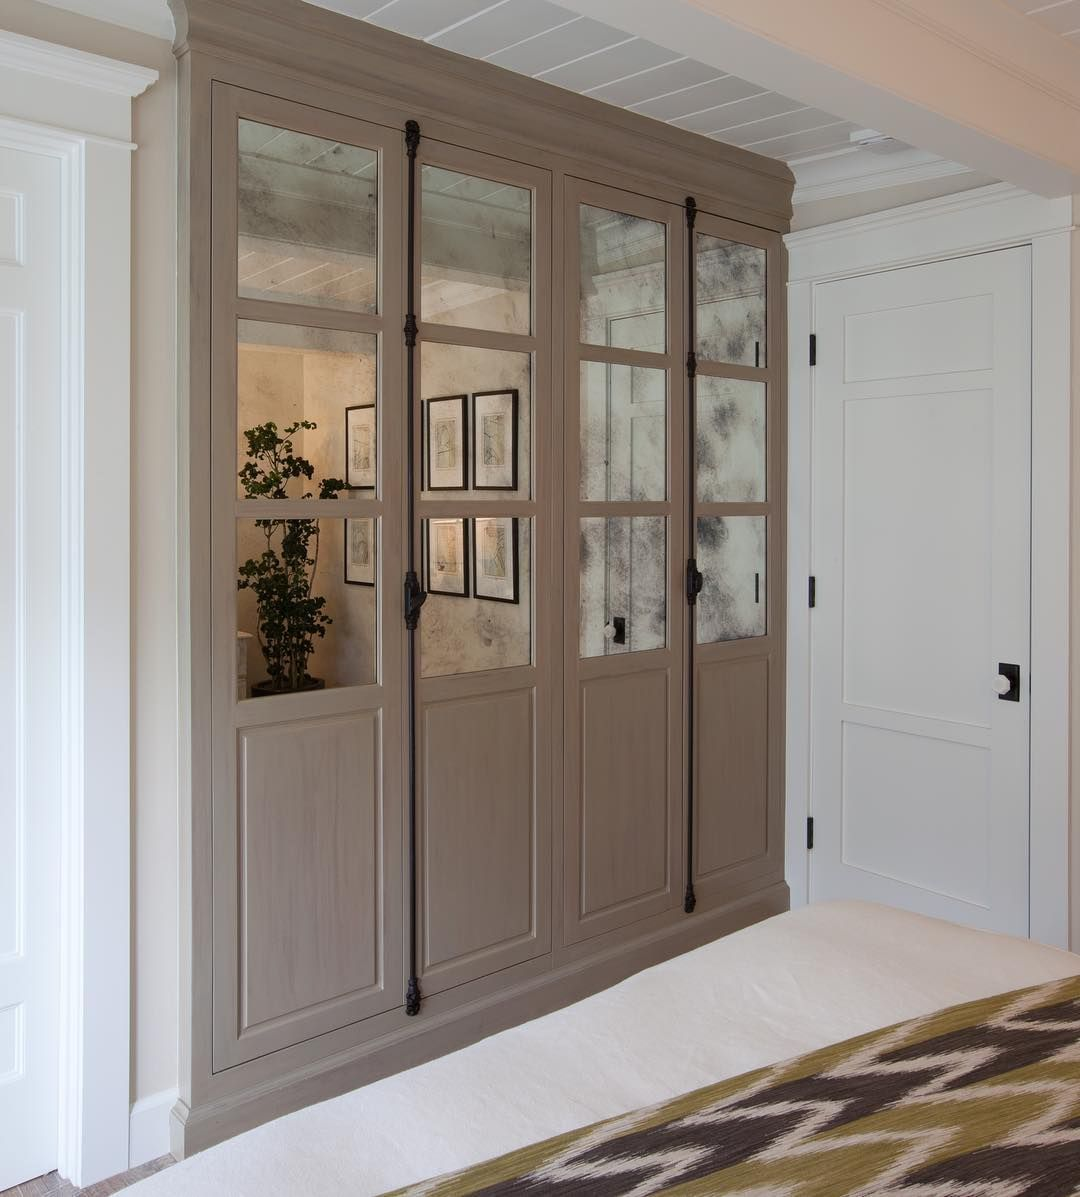 The Short List Current Cabinetry Obsessions Dlghtd Cabinetry Mirrored Cabinet Doors Inset Cabinets